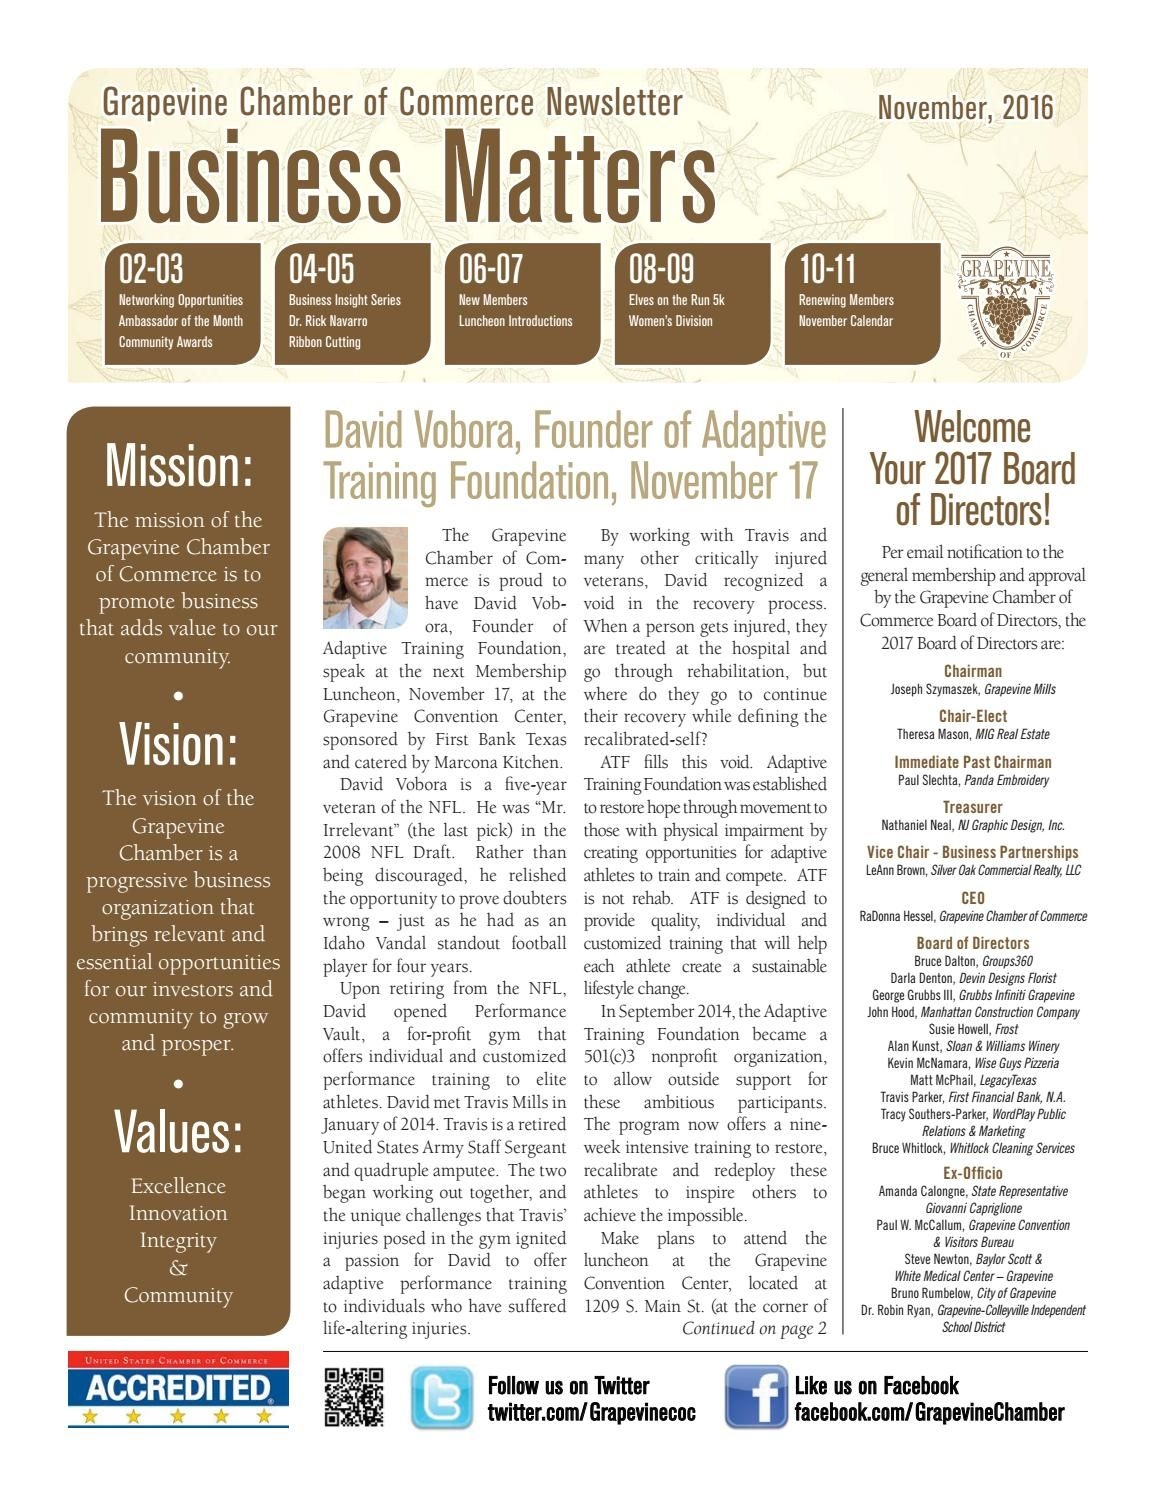 November 2016 Monthly Newsletter - Business Matters By